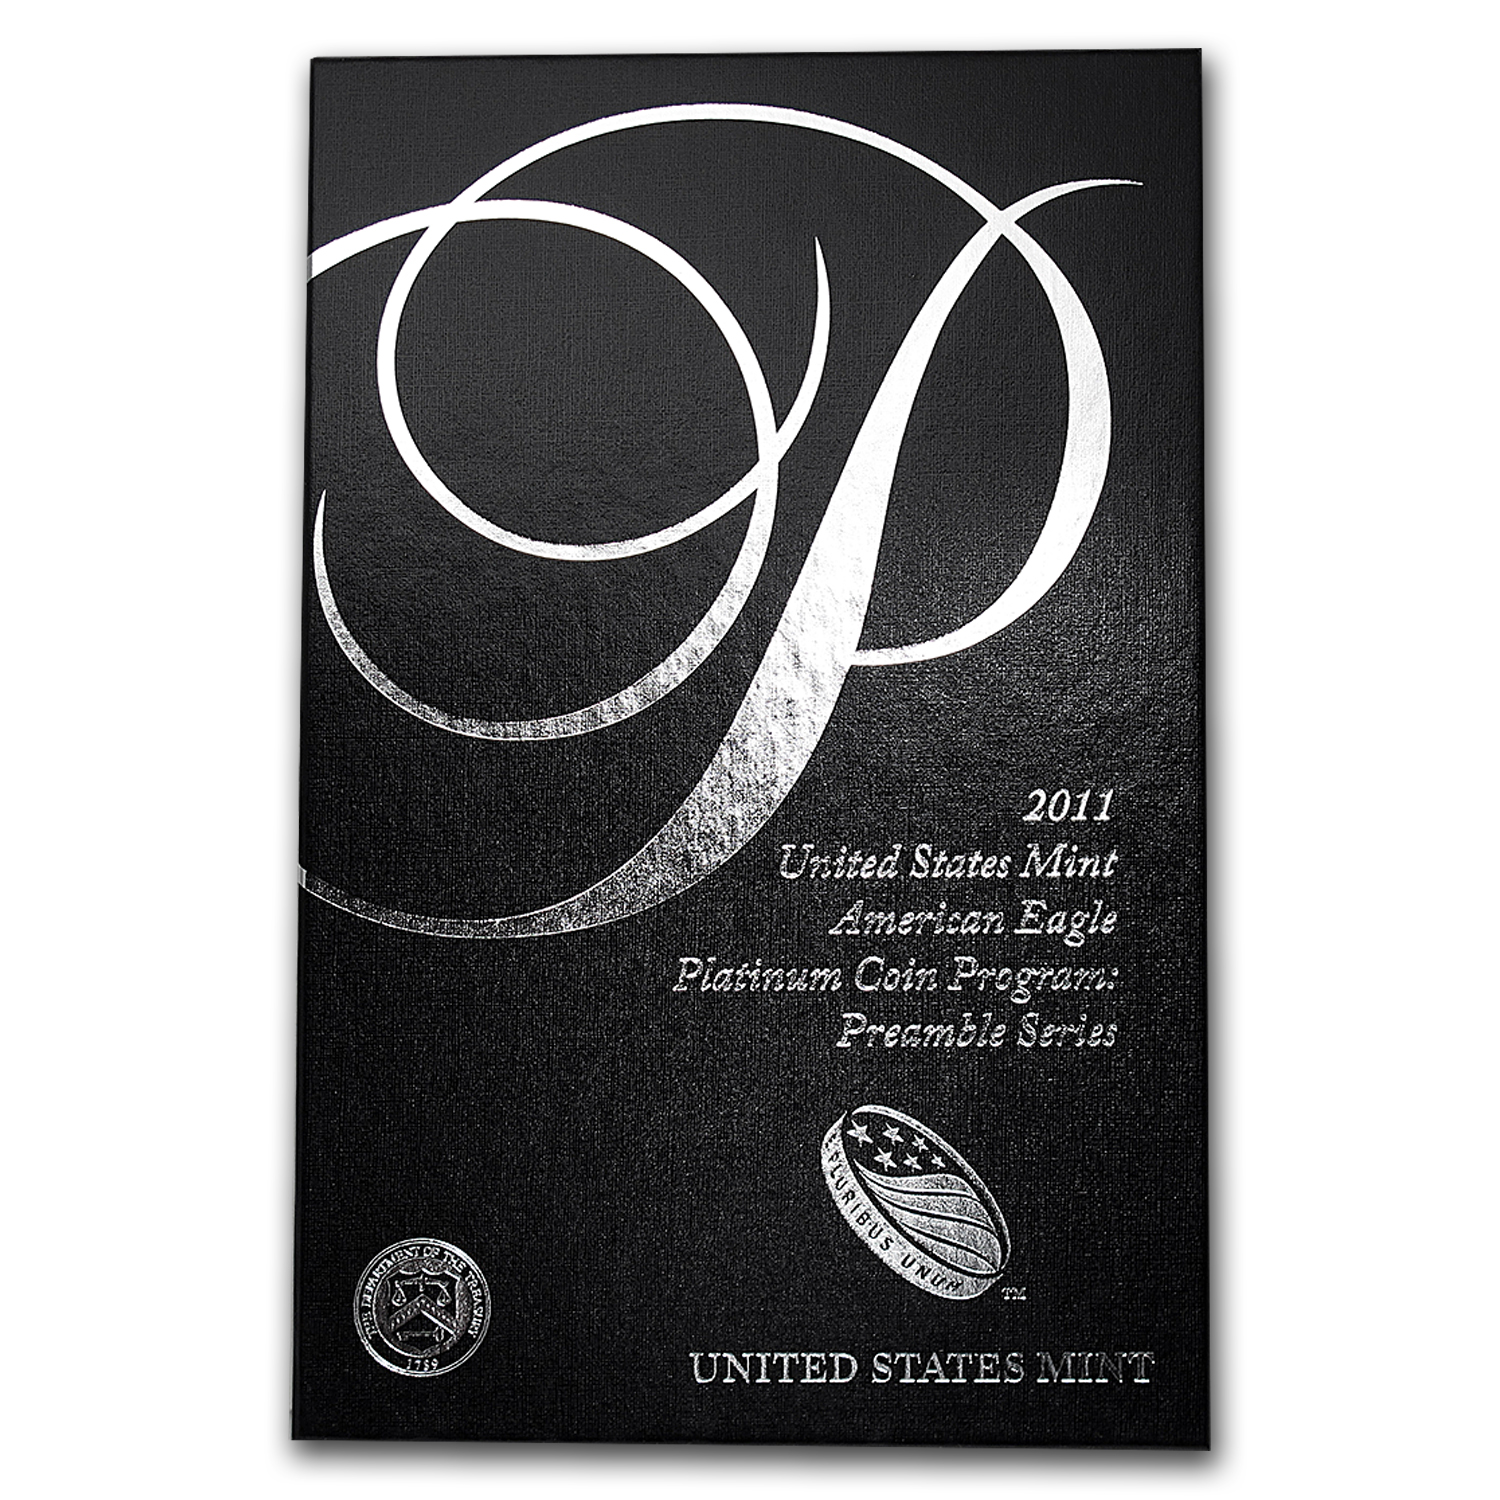 U.S. Mint Box - 2011 1 oz Platinum Eagle Proof Preamble Coin